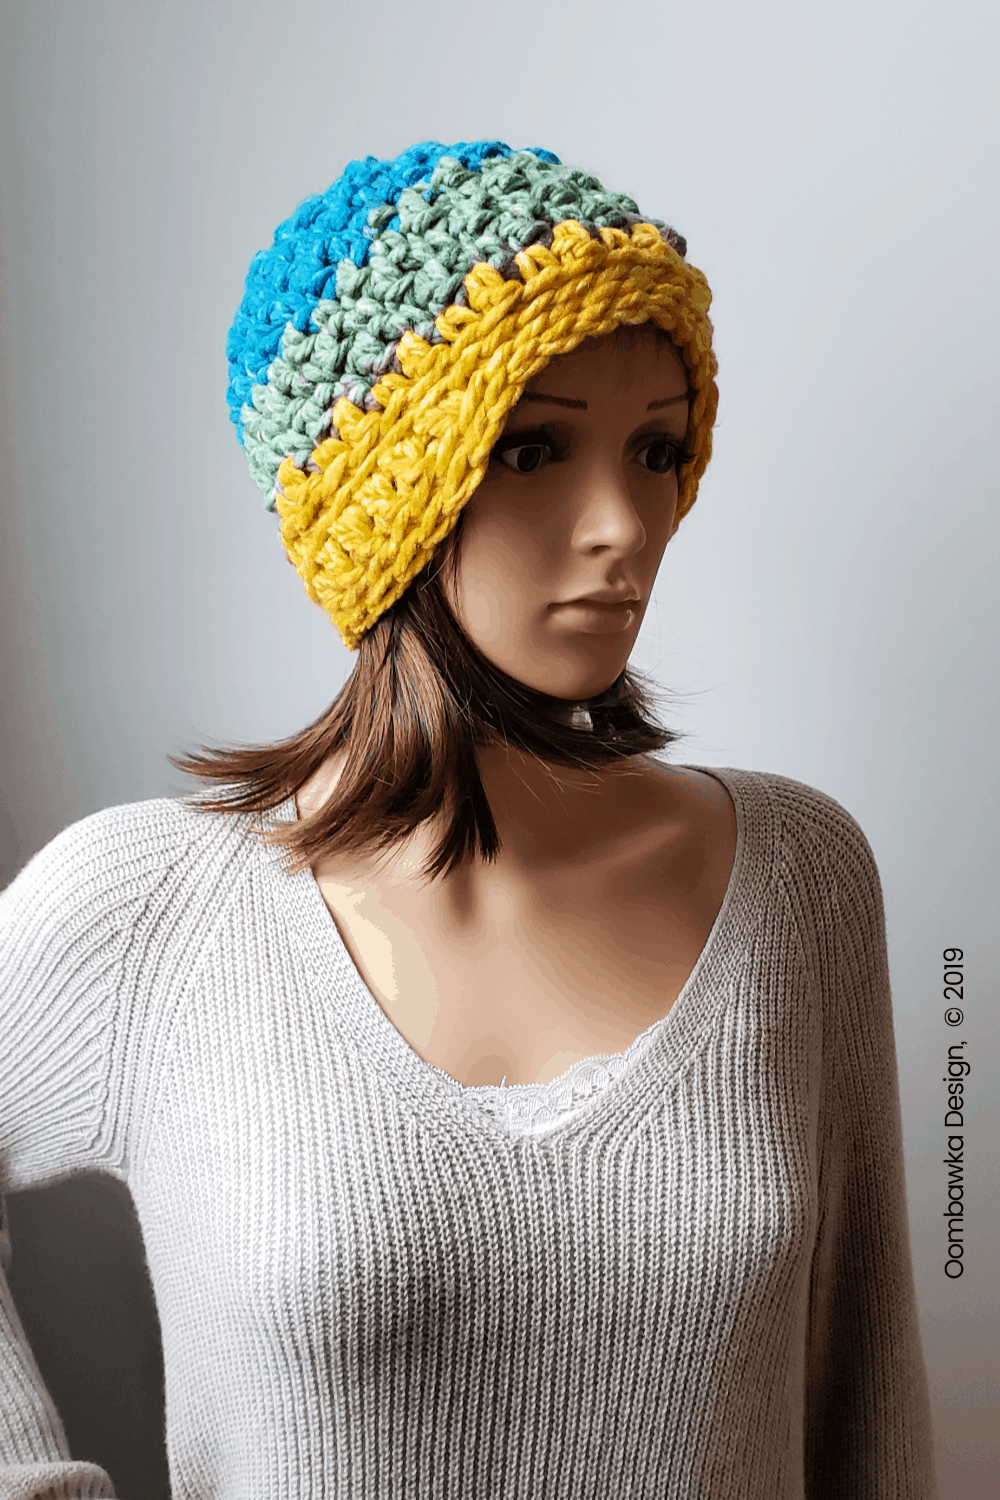 Today I get to share my new Norah Hat Pattern with you! This great project works up SO FAST! Less than 40 minutes from start to finish and less than 1 ball of Super Bulky Weight Yarn! The pattern is available in sizes Child and Adult (small, medium and large). You need a 10 mm (N/P) hook and Bernat POP! Bulky Yarn from Yarnspirations. #yarnspirations #joycreators #hatpattern #crochet #CALCentralCrochet #HolidayStashdown